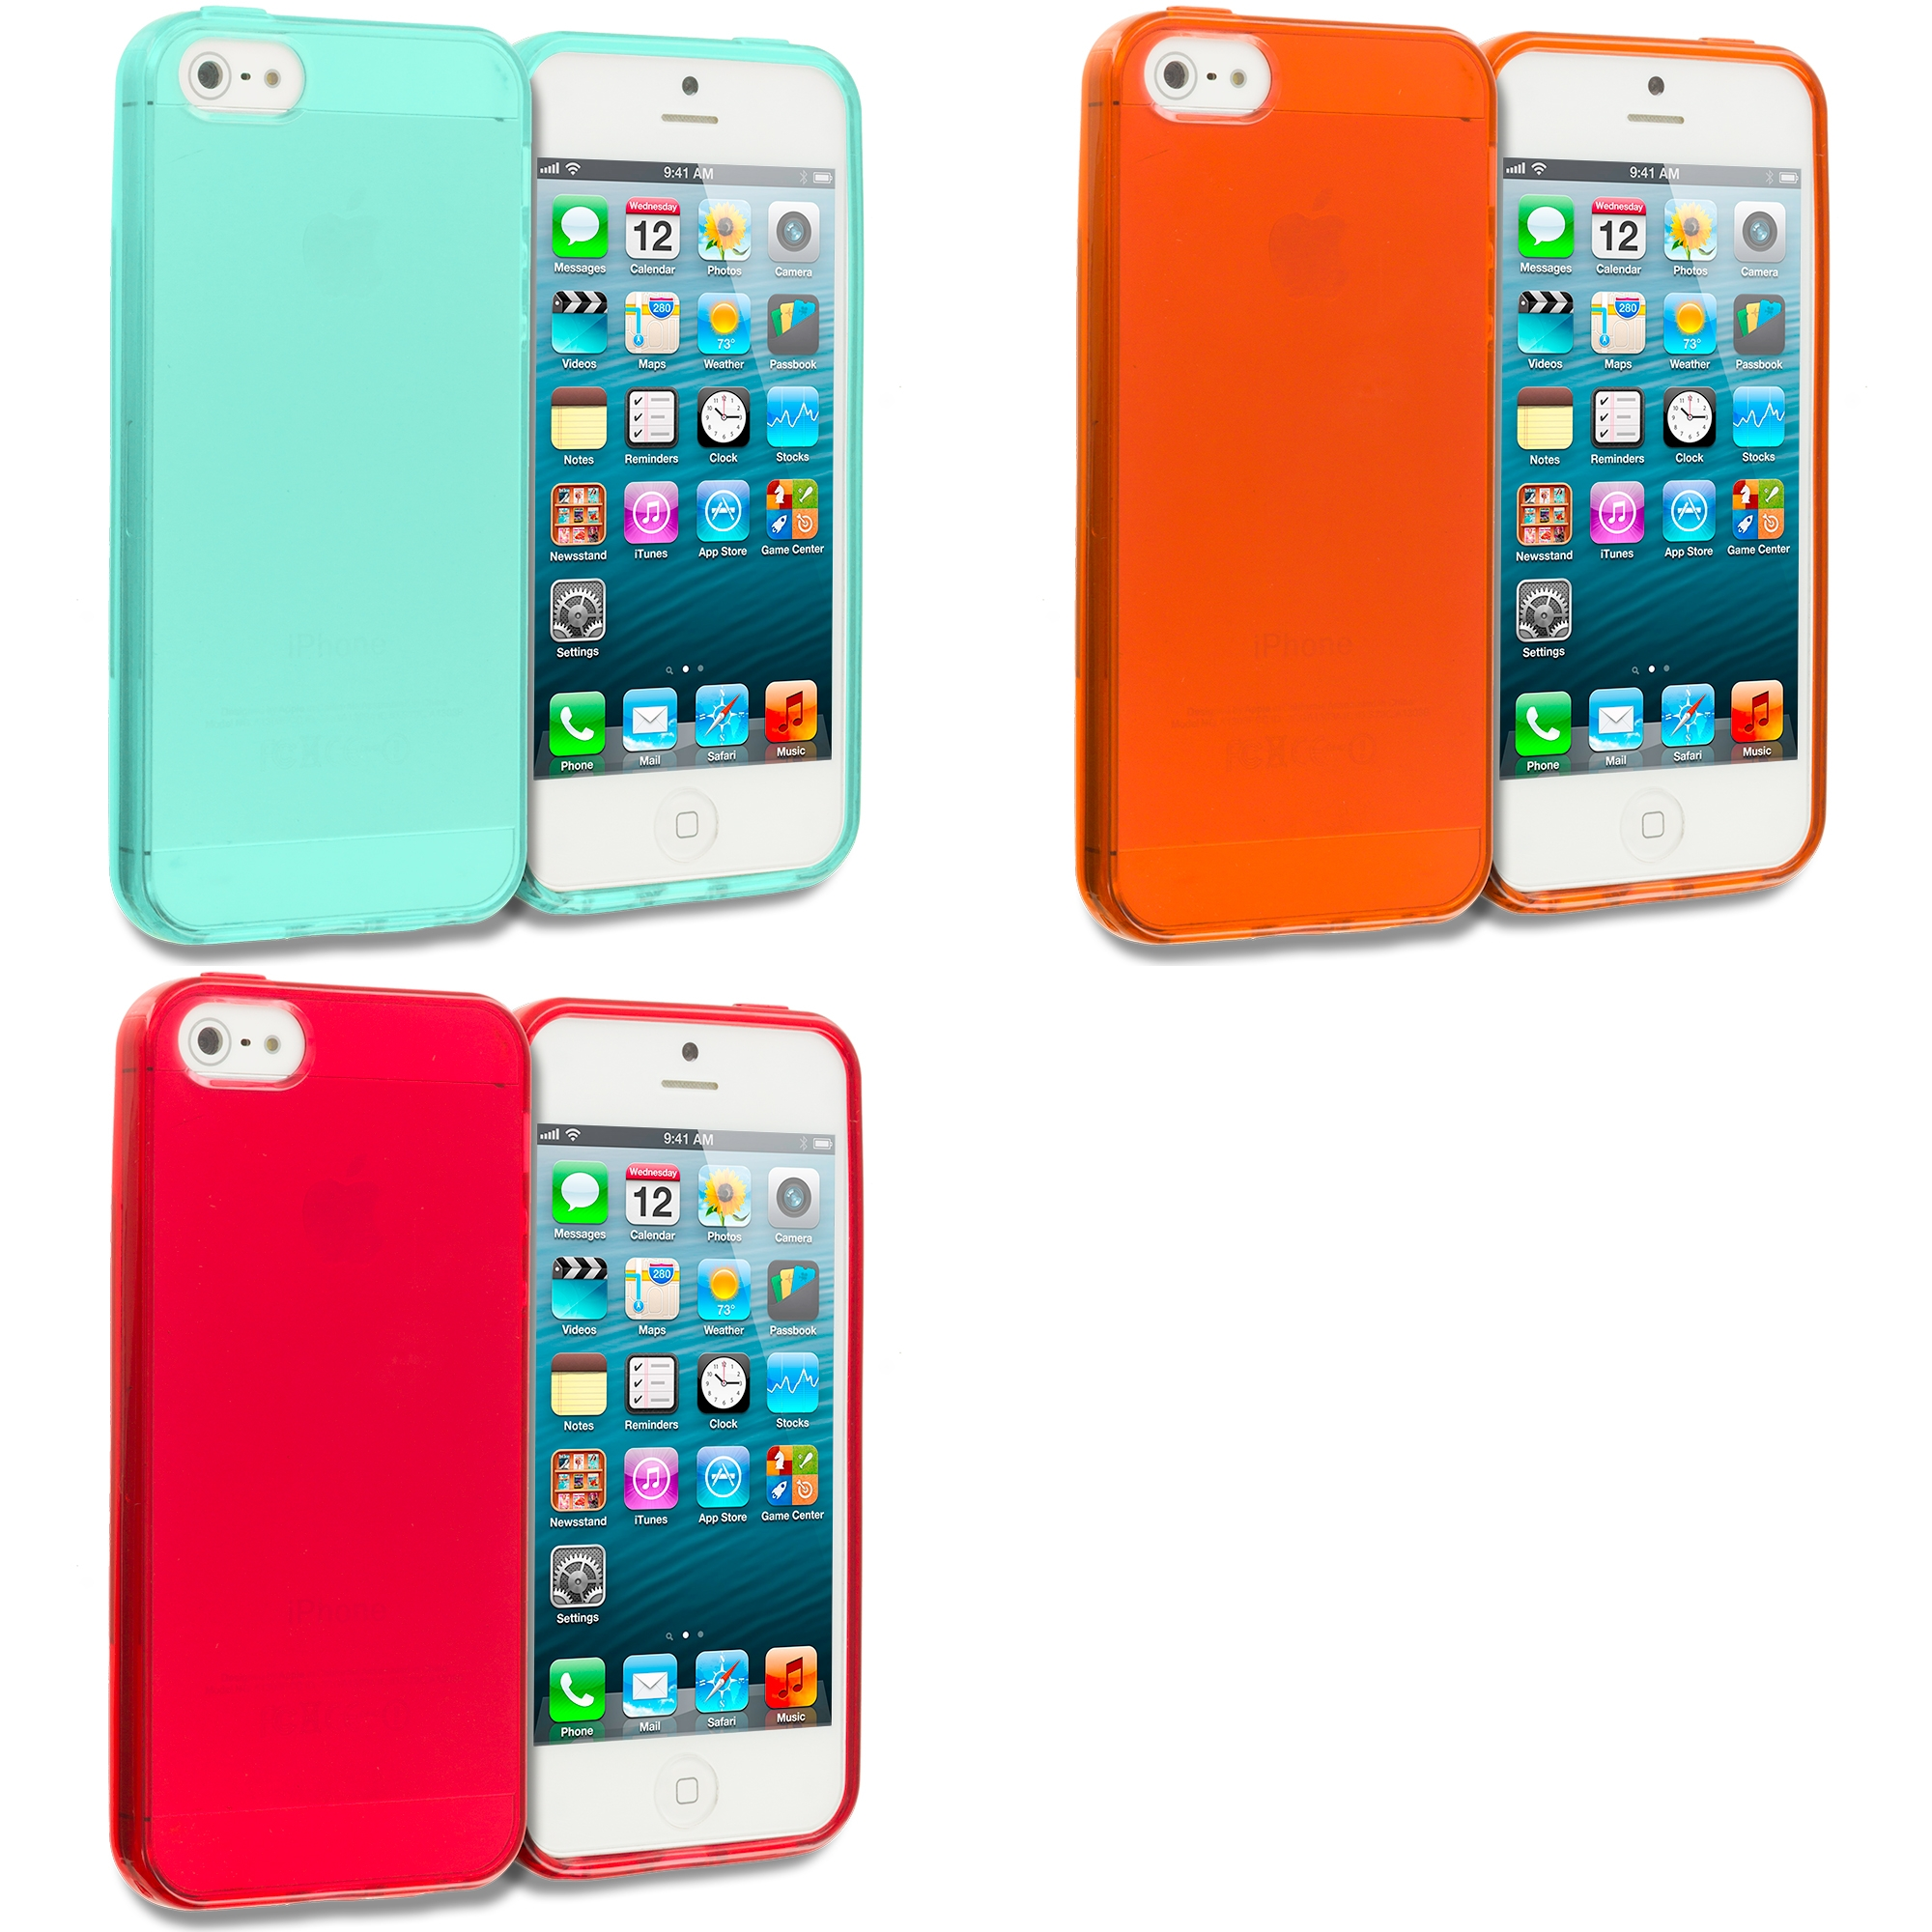 Apple iPhone 5/5S/SE Combo Pack : Mint Green Plain TPU Rubber Skin Case Cover